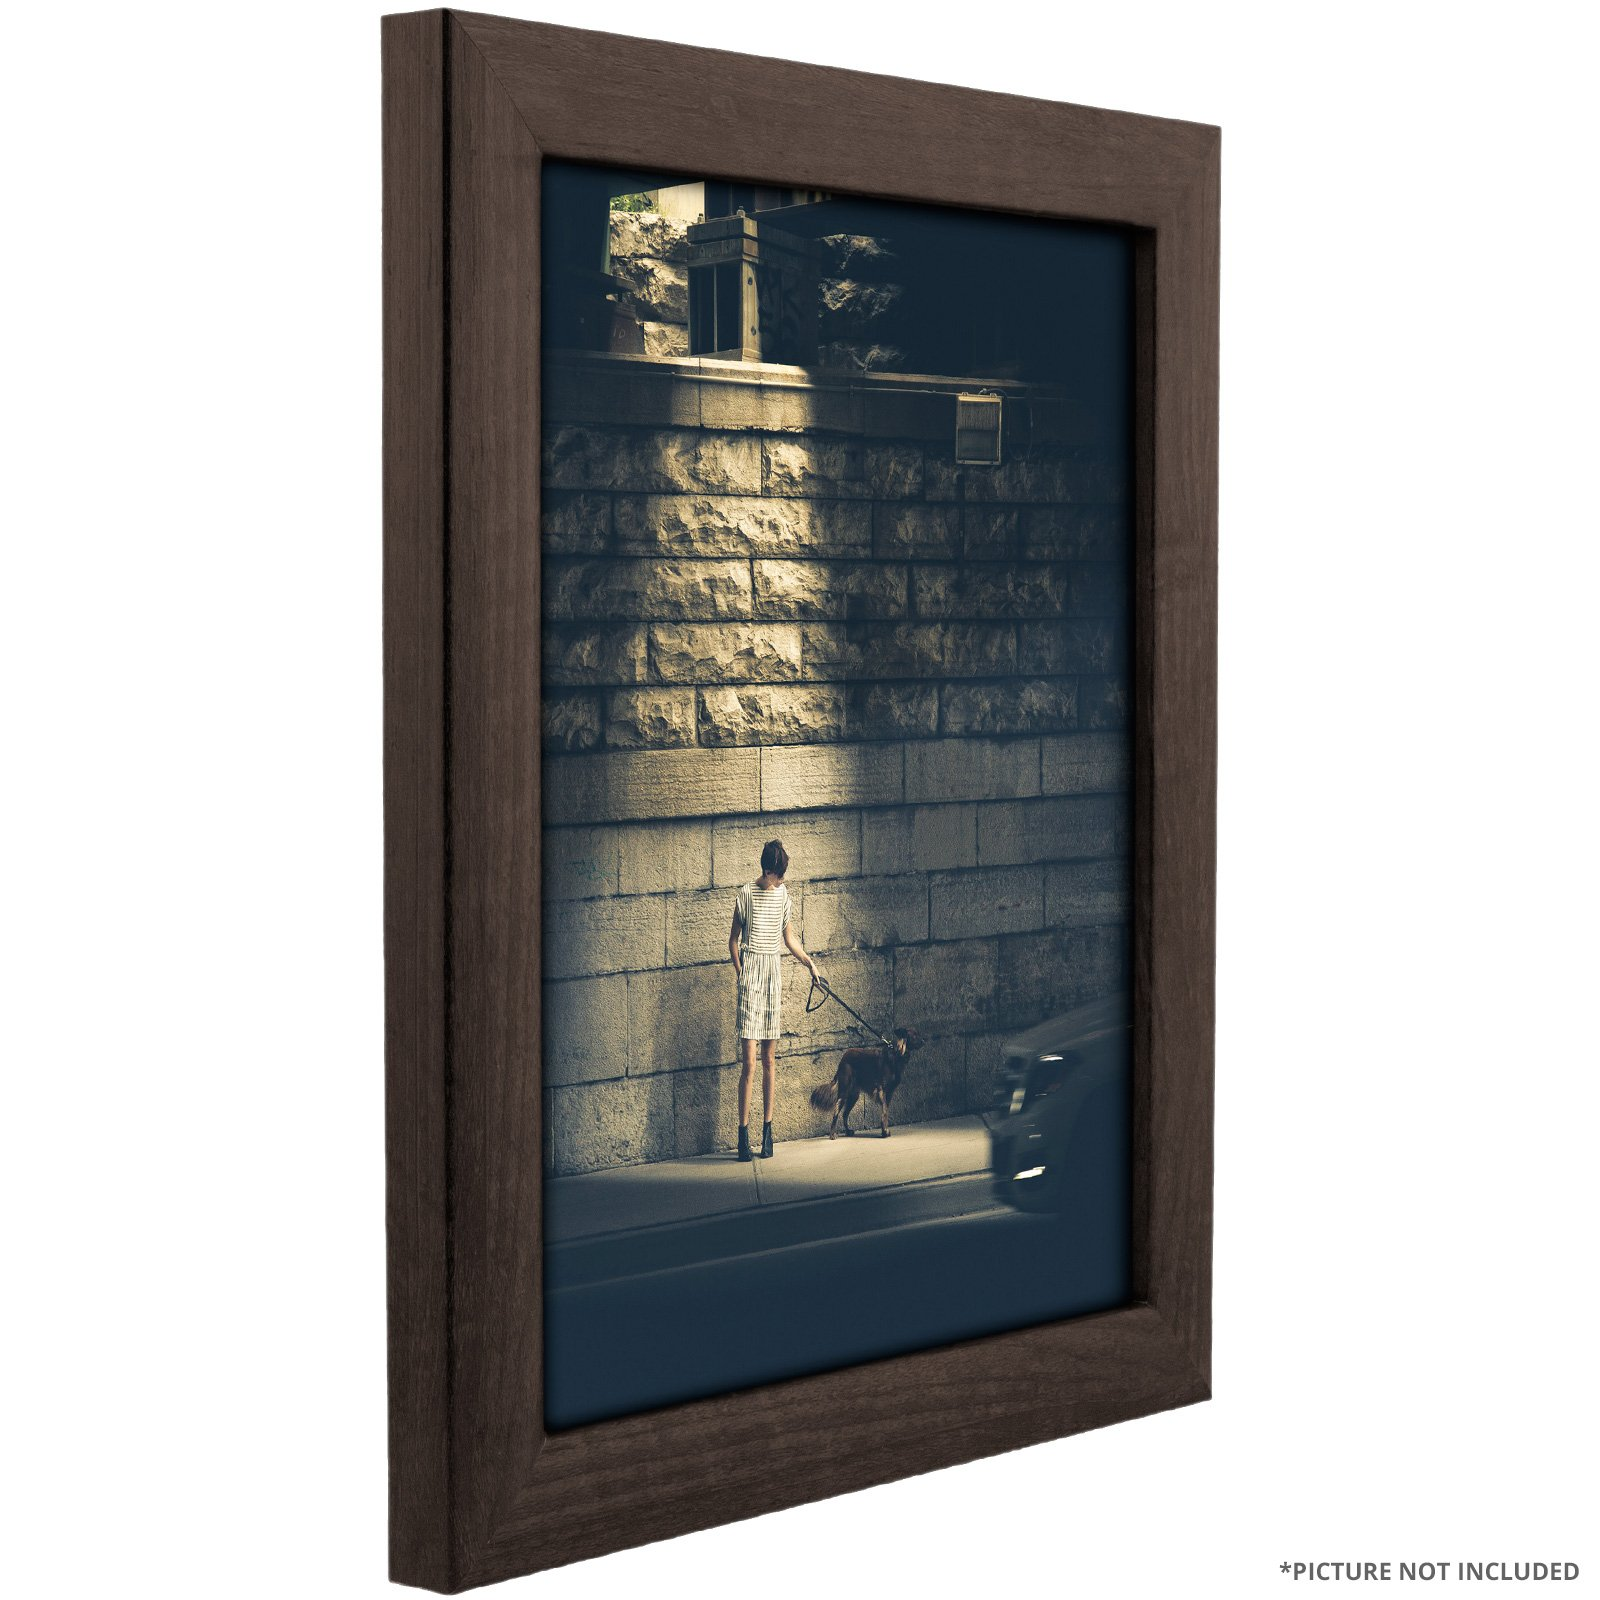 Craig Frames 232477782436AC 1-Inch Wide Picture/Poster Frame in Smooth Wood Grain Finish, 24 by 36-Inch, Brazilian Walnut by Craig Frames (Image #3)